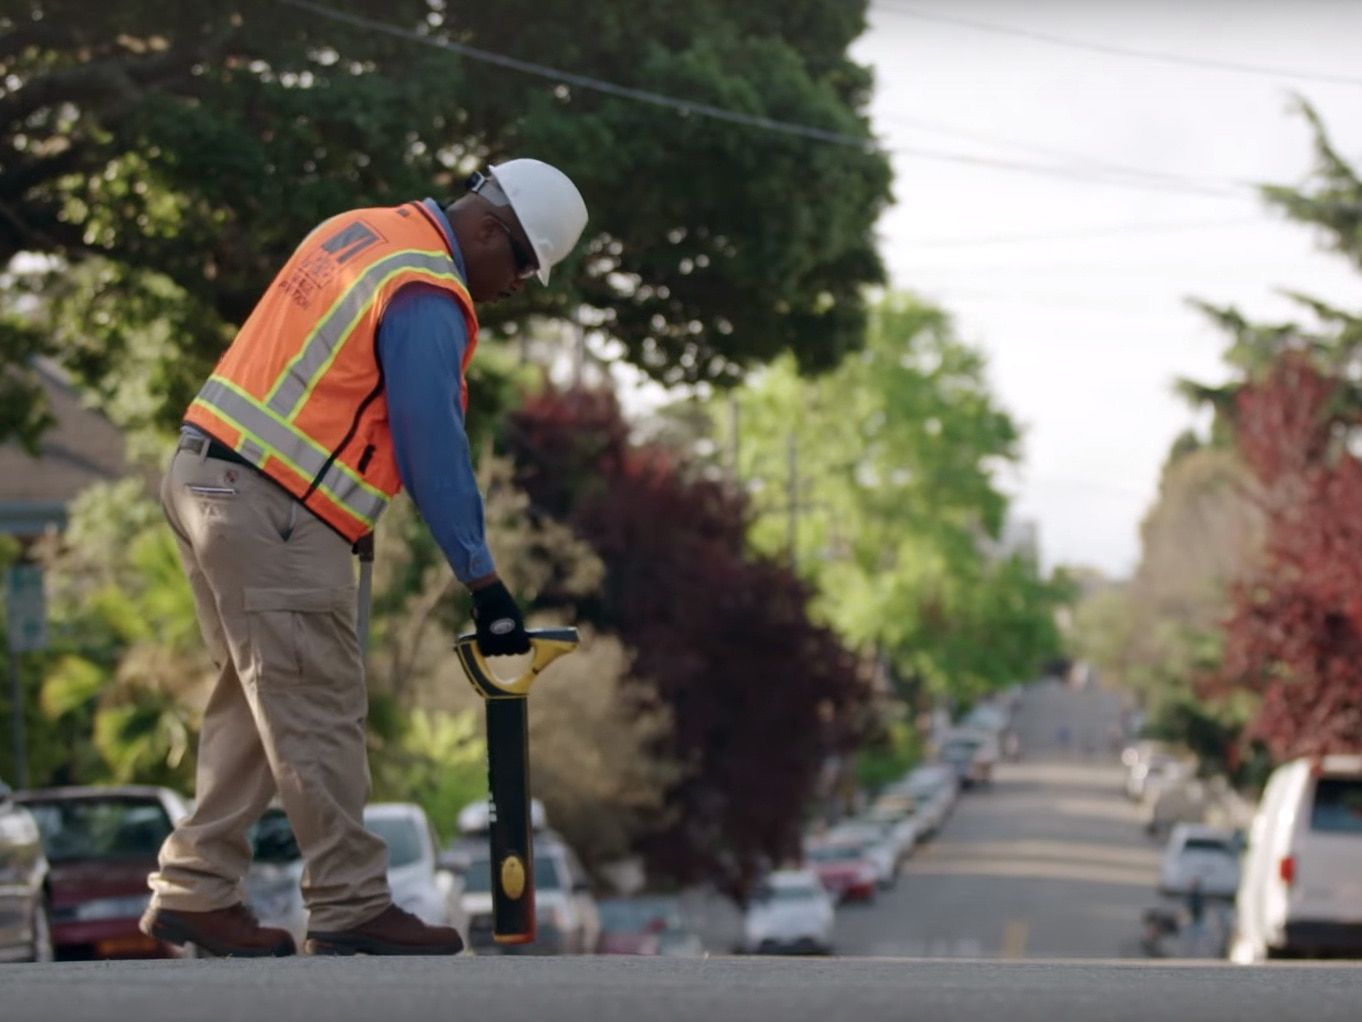 PG&E worker performing safety testing